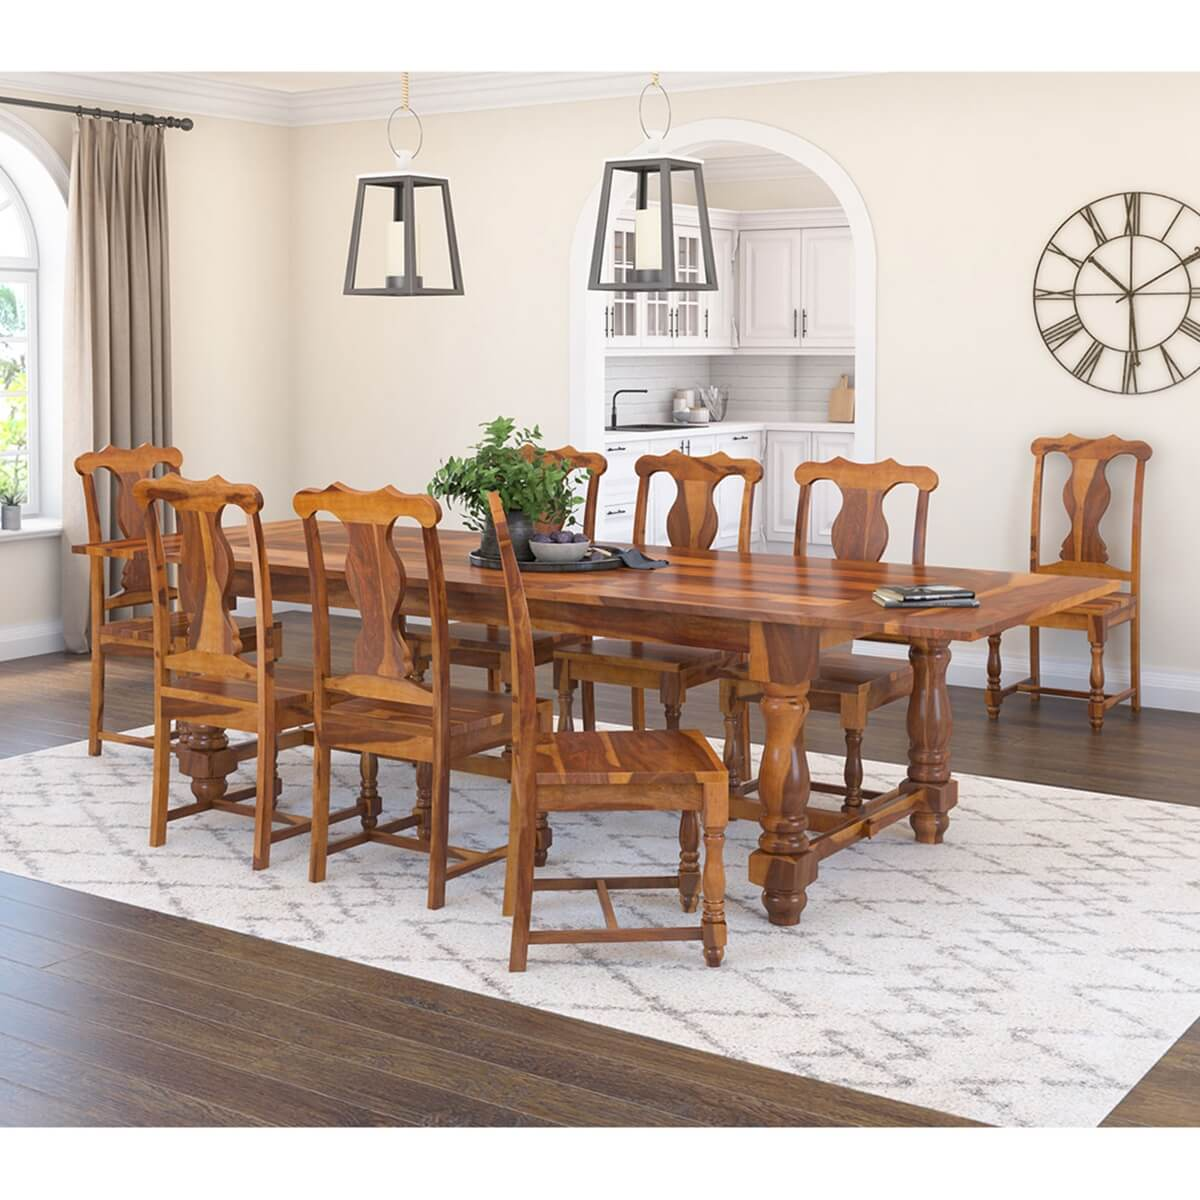 Wooden Dining Table Set ~ Rustic solid wood dining table chair set furniture w